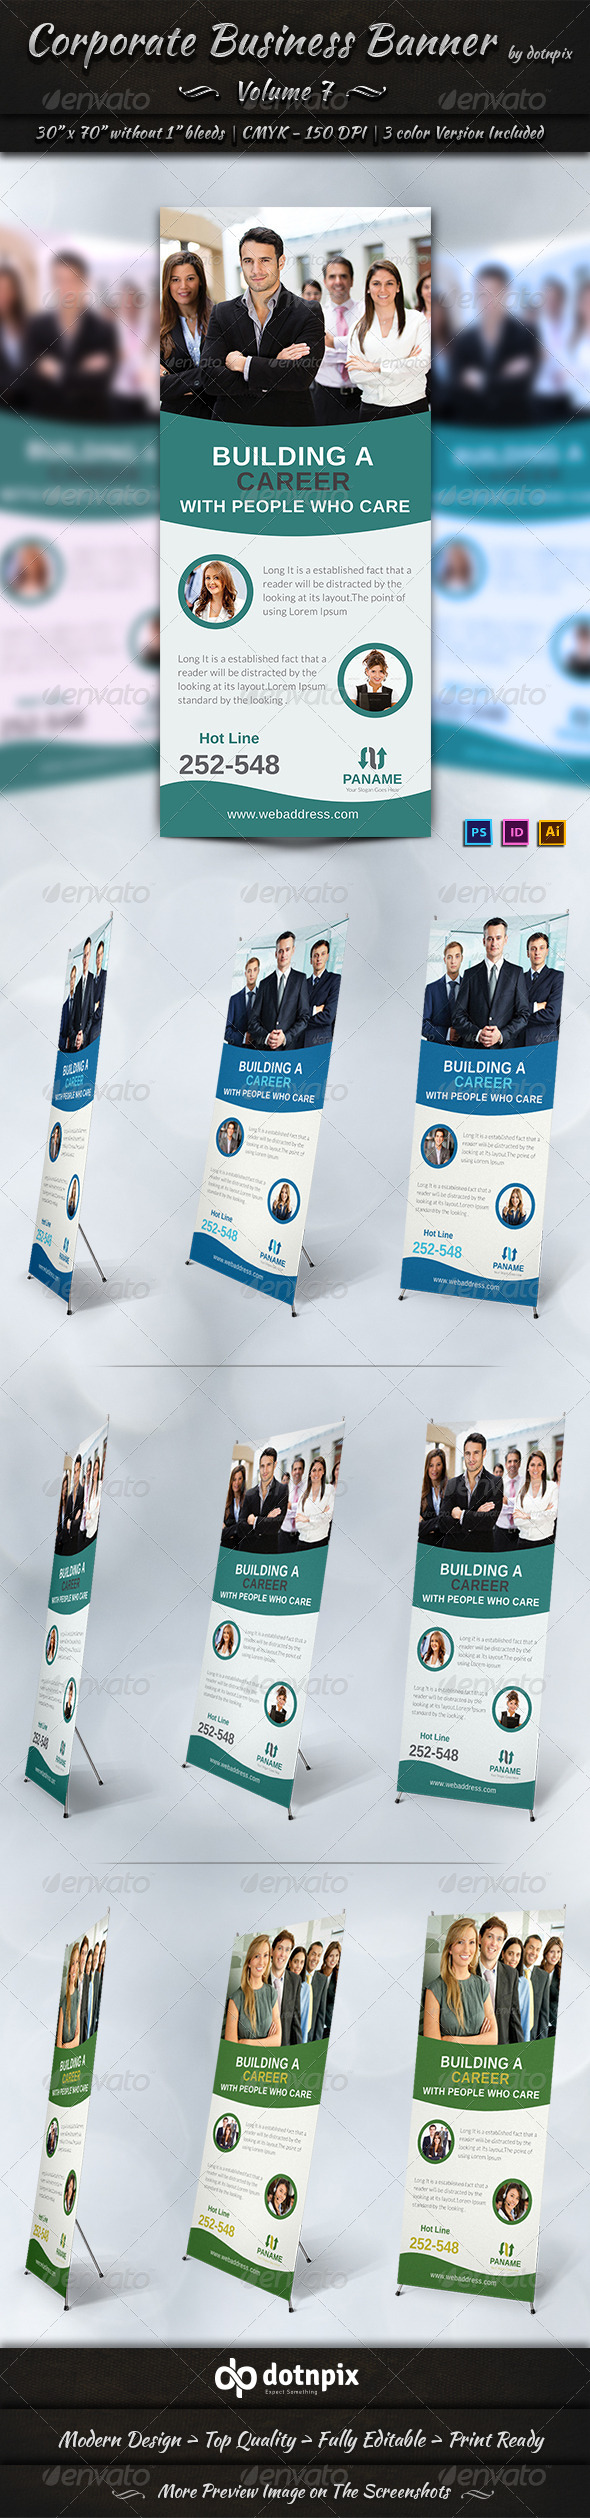 GraphicRiver Corporate Business Banner Volume 7 6963585